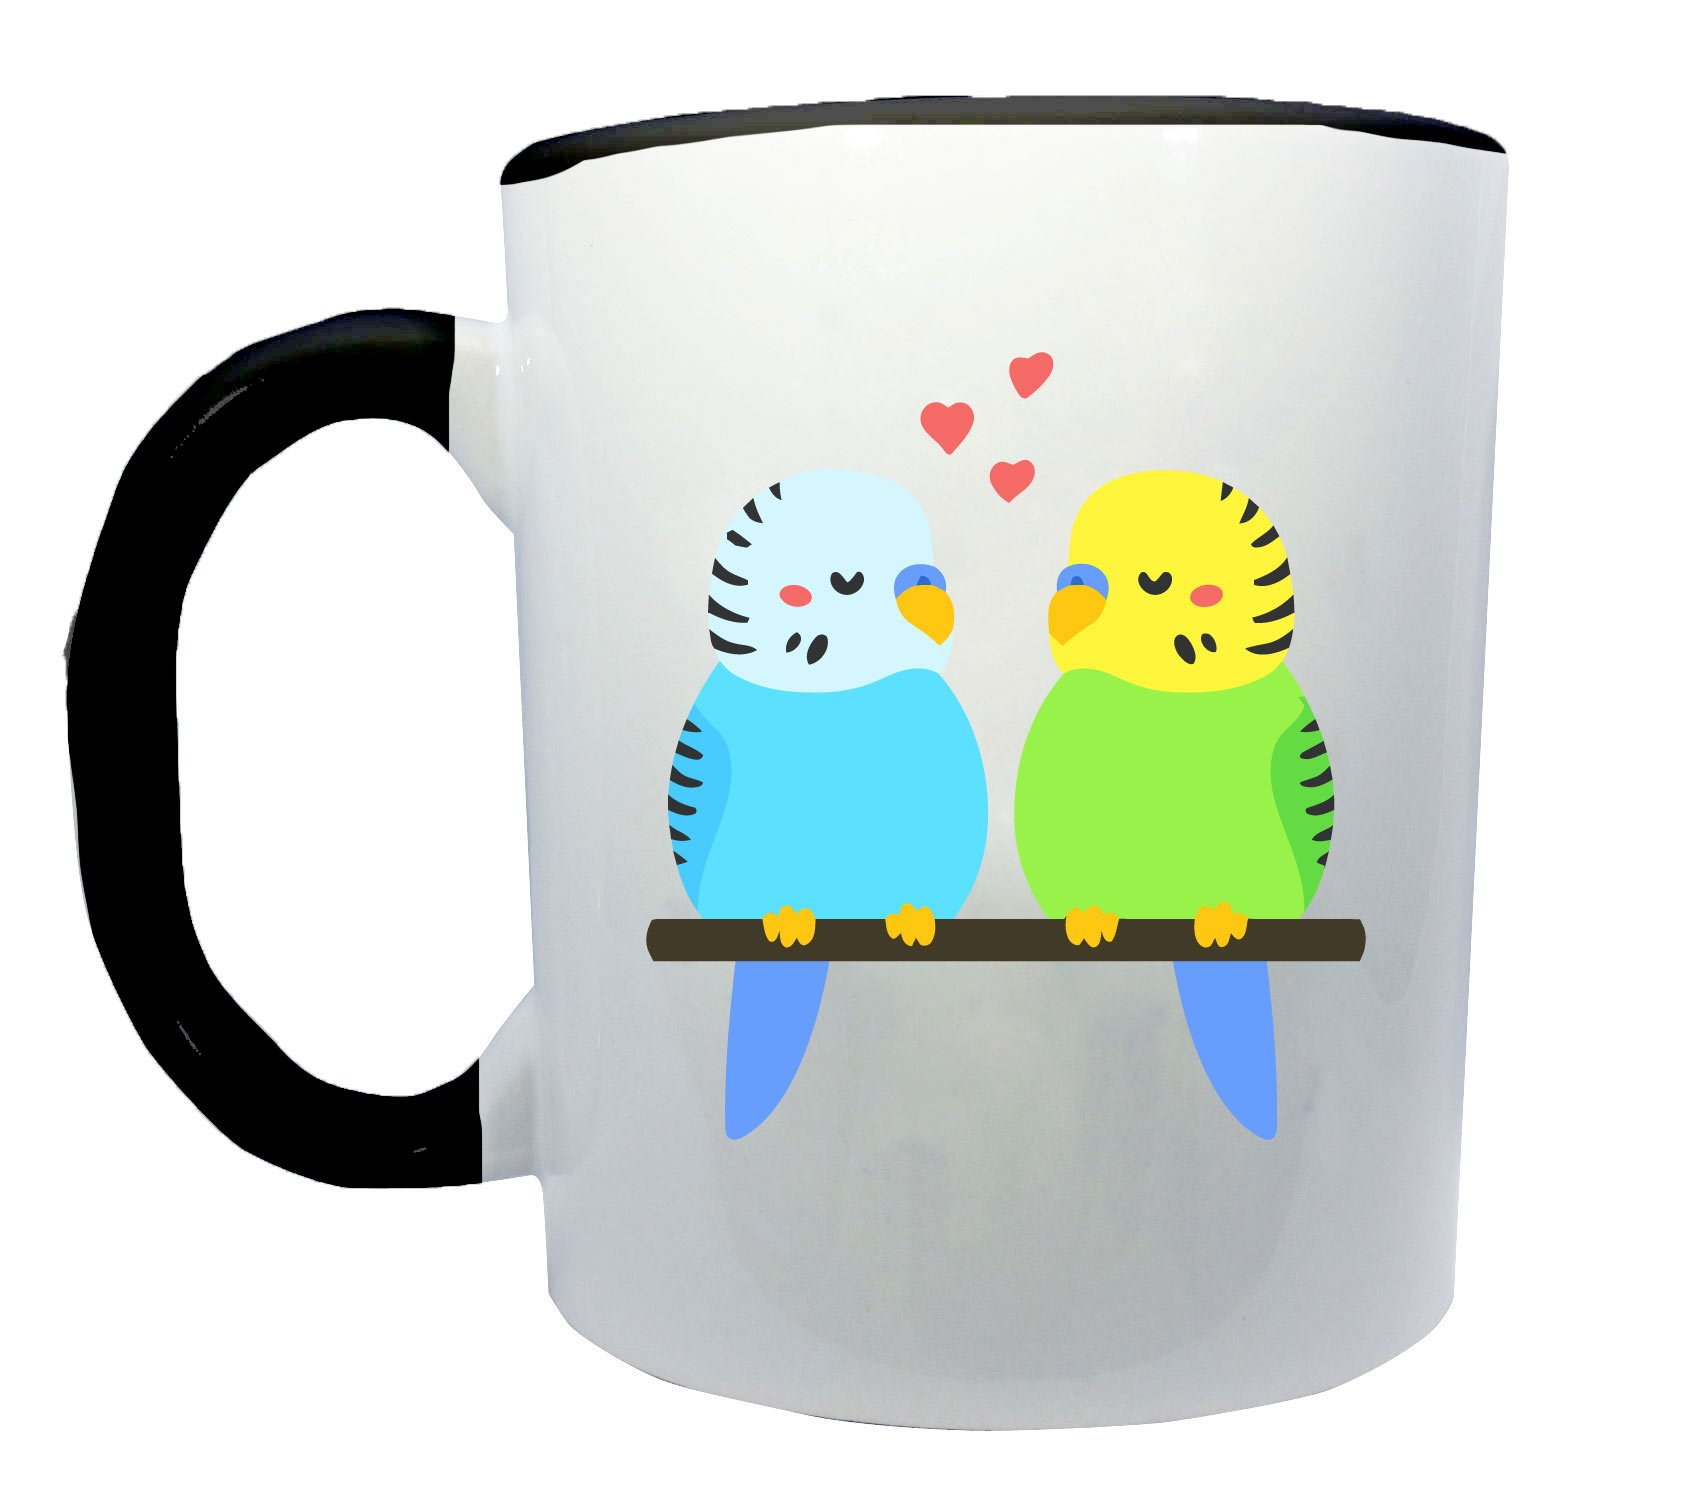 Cute Chibi Budgie Bird Lovers On a Branch Coffee or Tea 11oz Mug - Perfect Gift for Bird and Animal Lovers by Dark Spark Decals